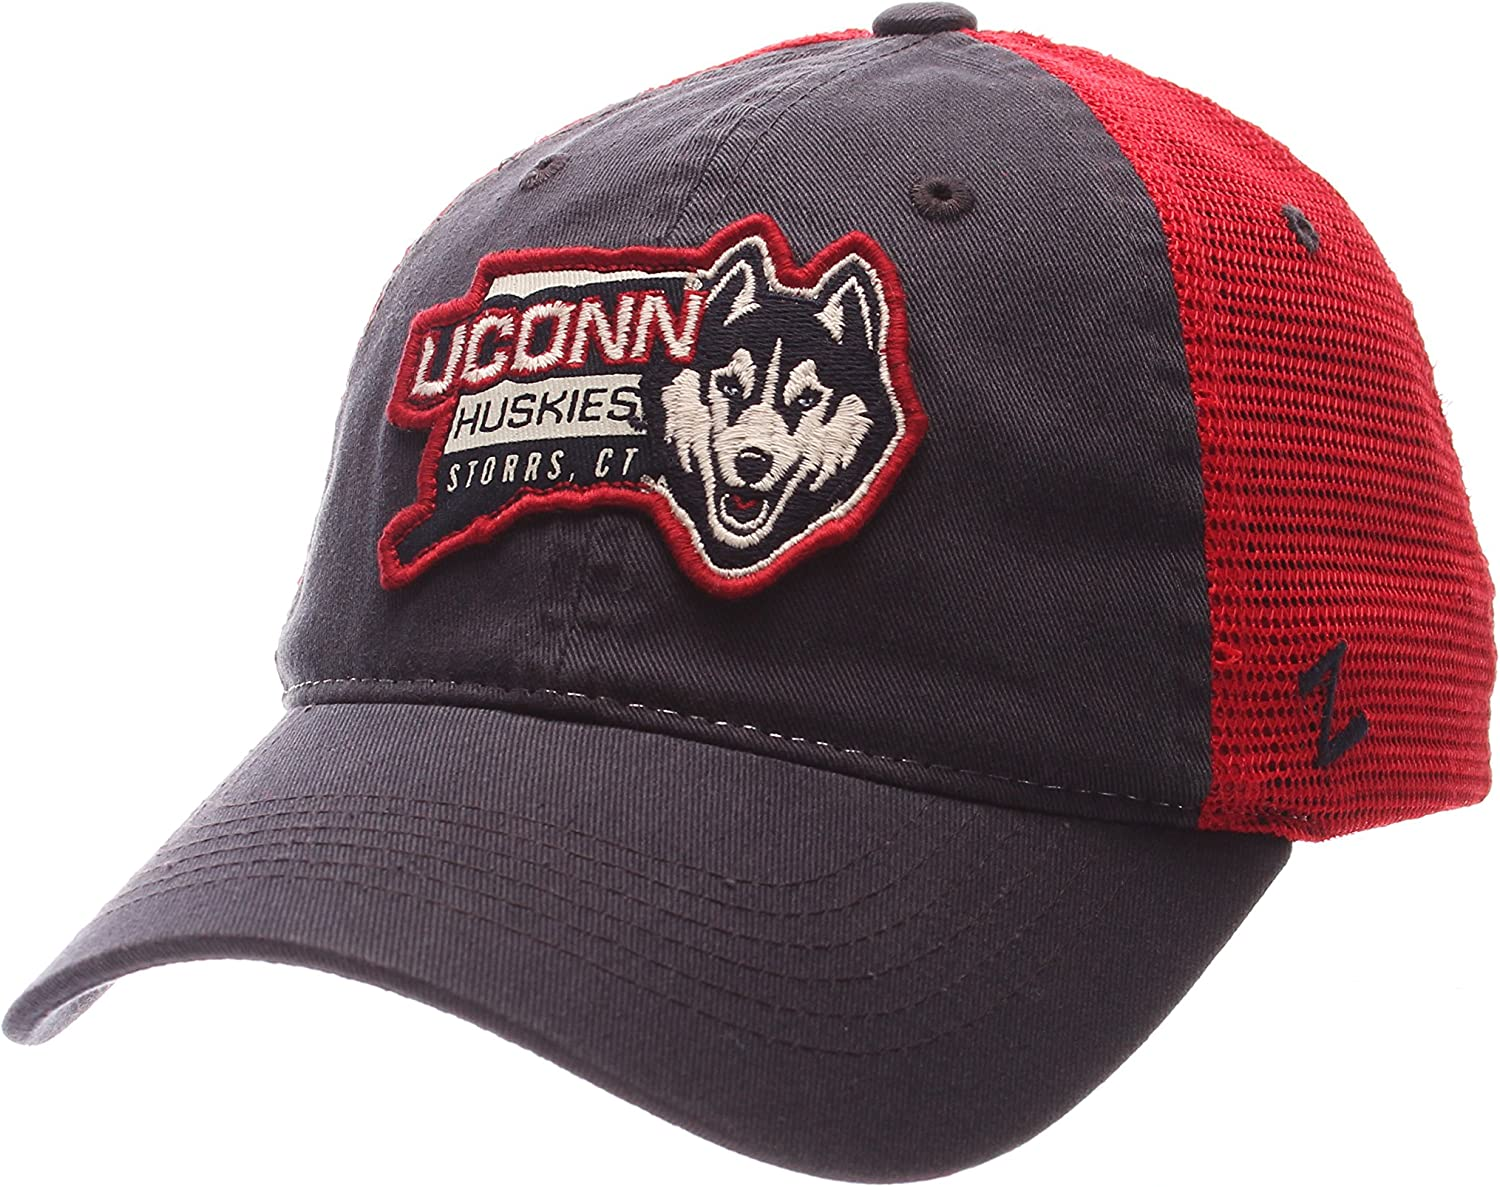 NCAA Zephyr Connecticut Huskies Mens Freeway Relaxed Hat Adjustable Team Color